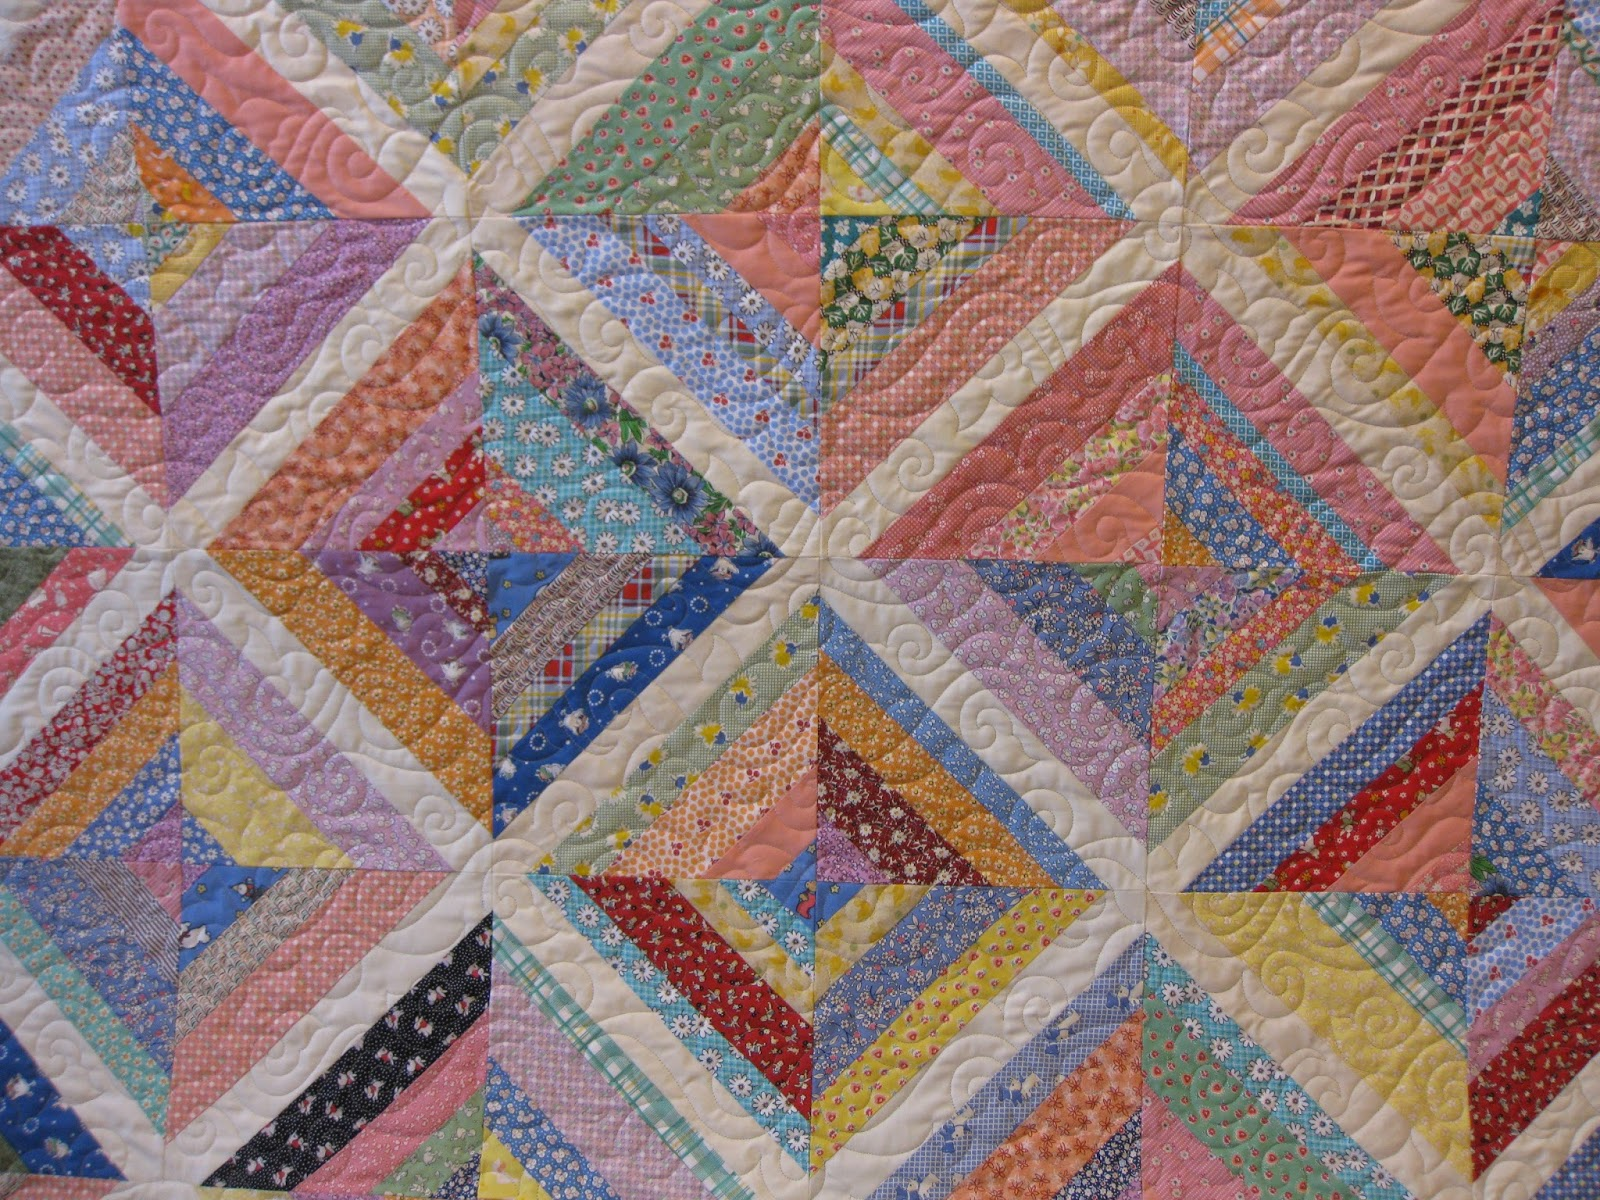 Millie s Quilting: String Quilts